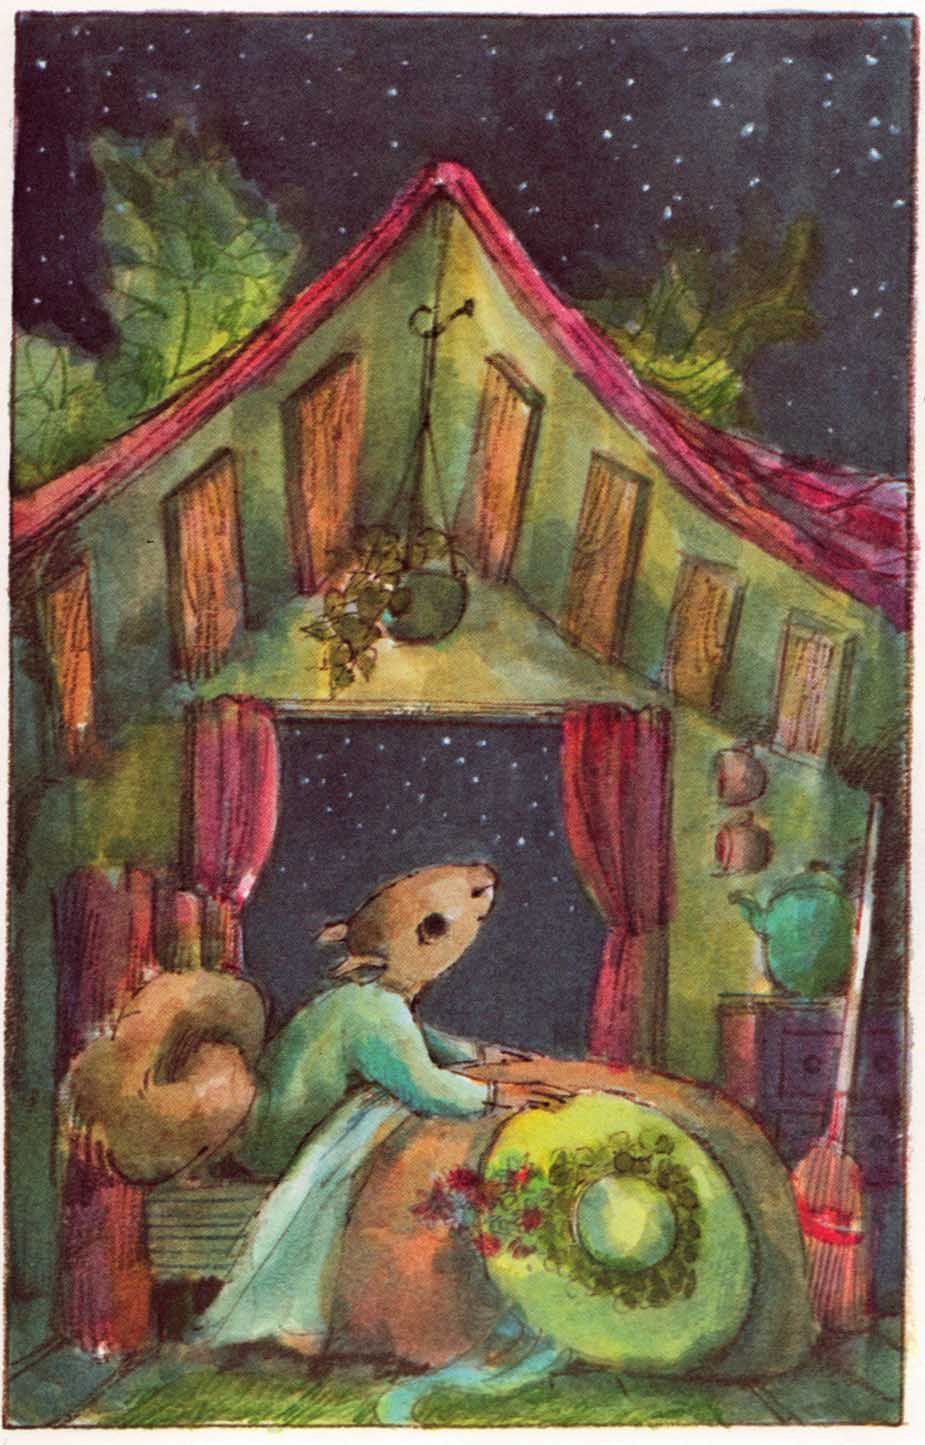 Vintage Kids' Books My Kid Loves: Miss Suzy's Easter Surprise-art by Arnold Lobel